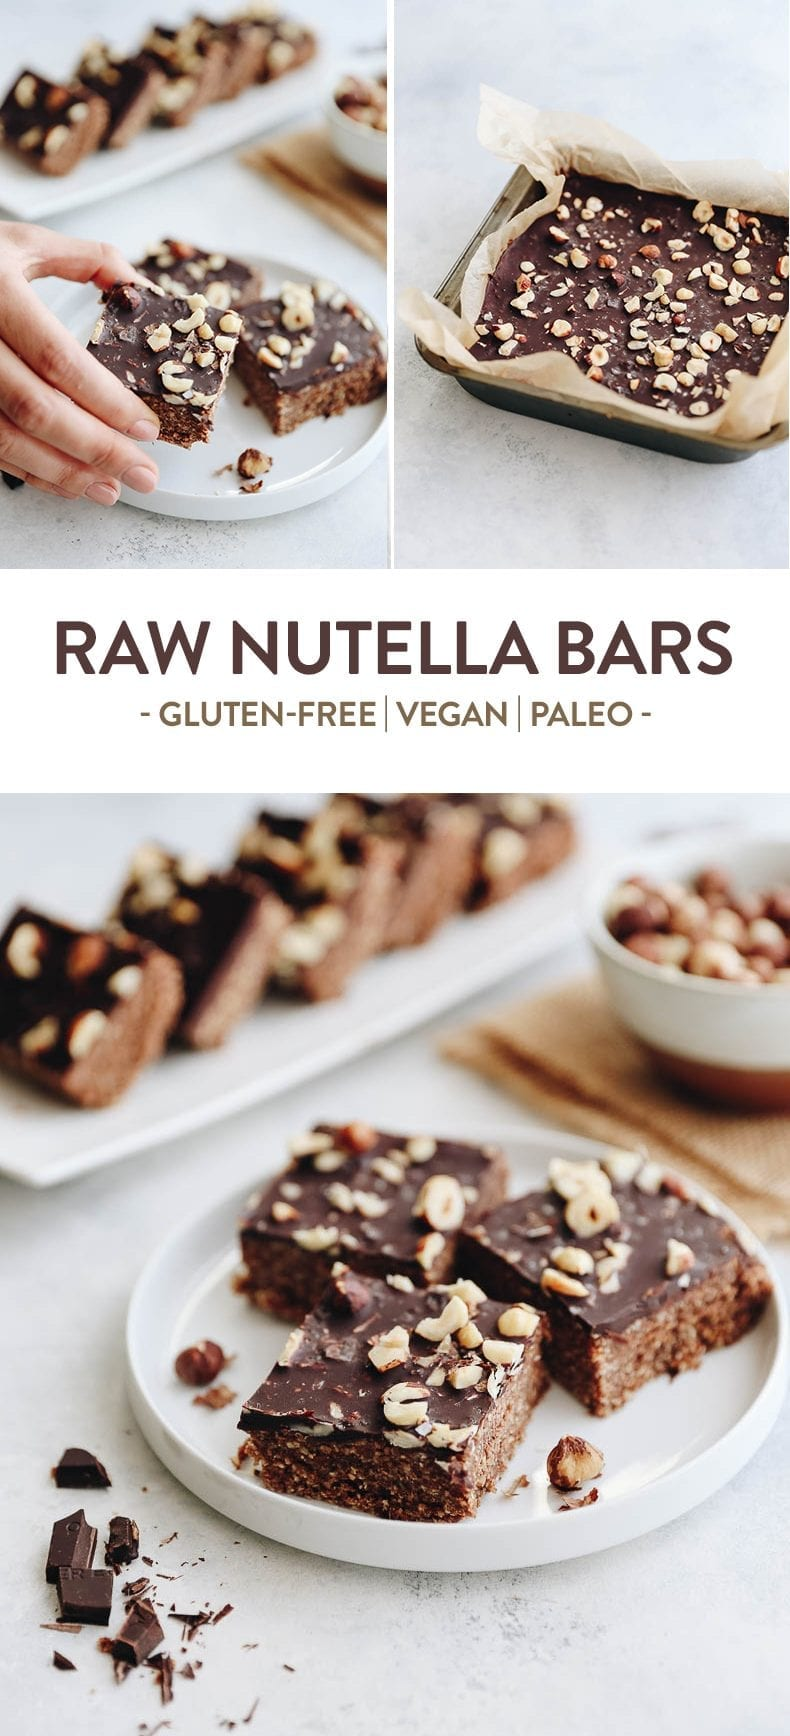 These Raw Nutella Bars make for a healthy and quick snack made with just 5 simple ingredients you probably already have in your house. A go-to snack recipe for vegan and non-vegans alike #vegan #raw #nutella